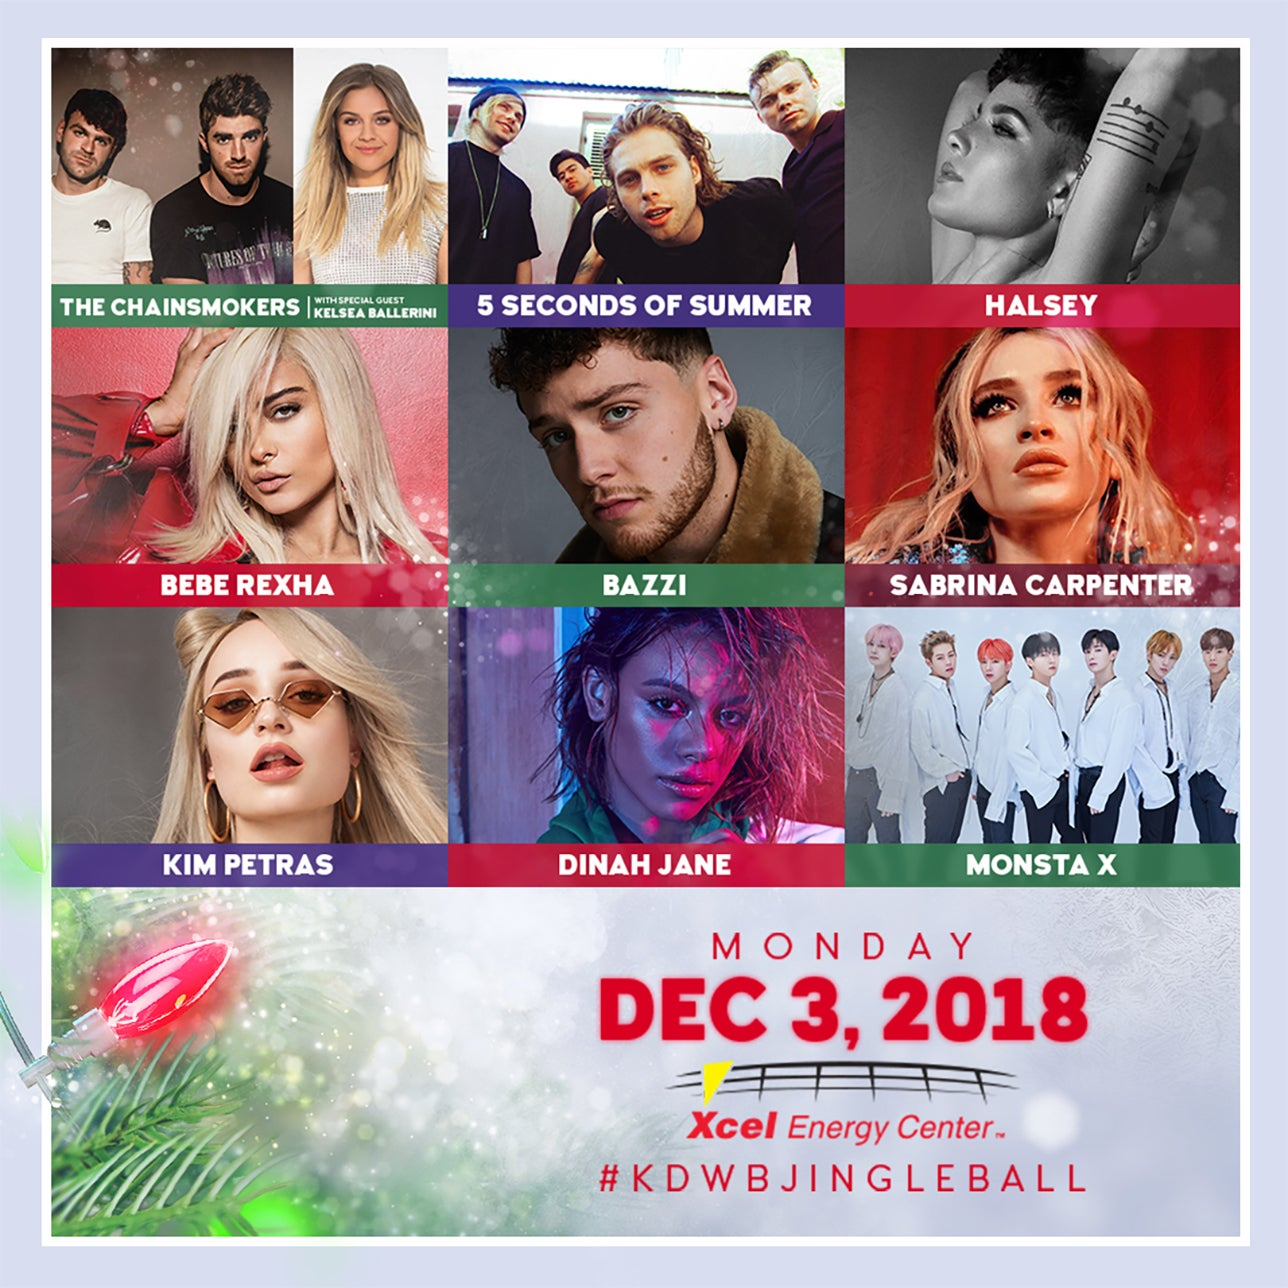 101.3 KDWB's Jingle Ball